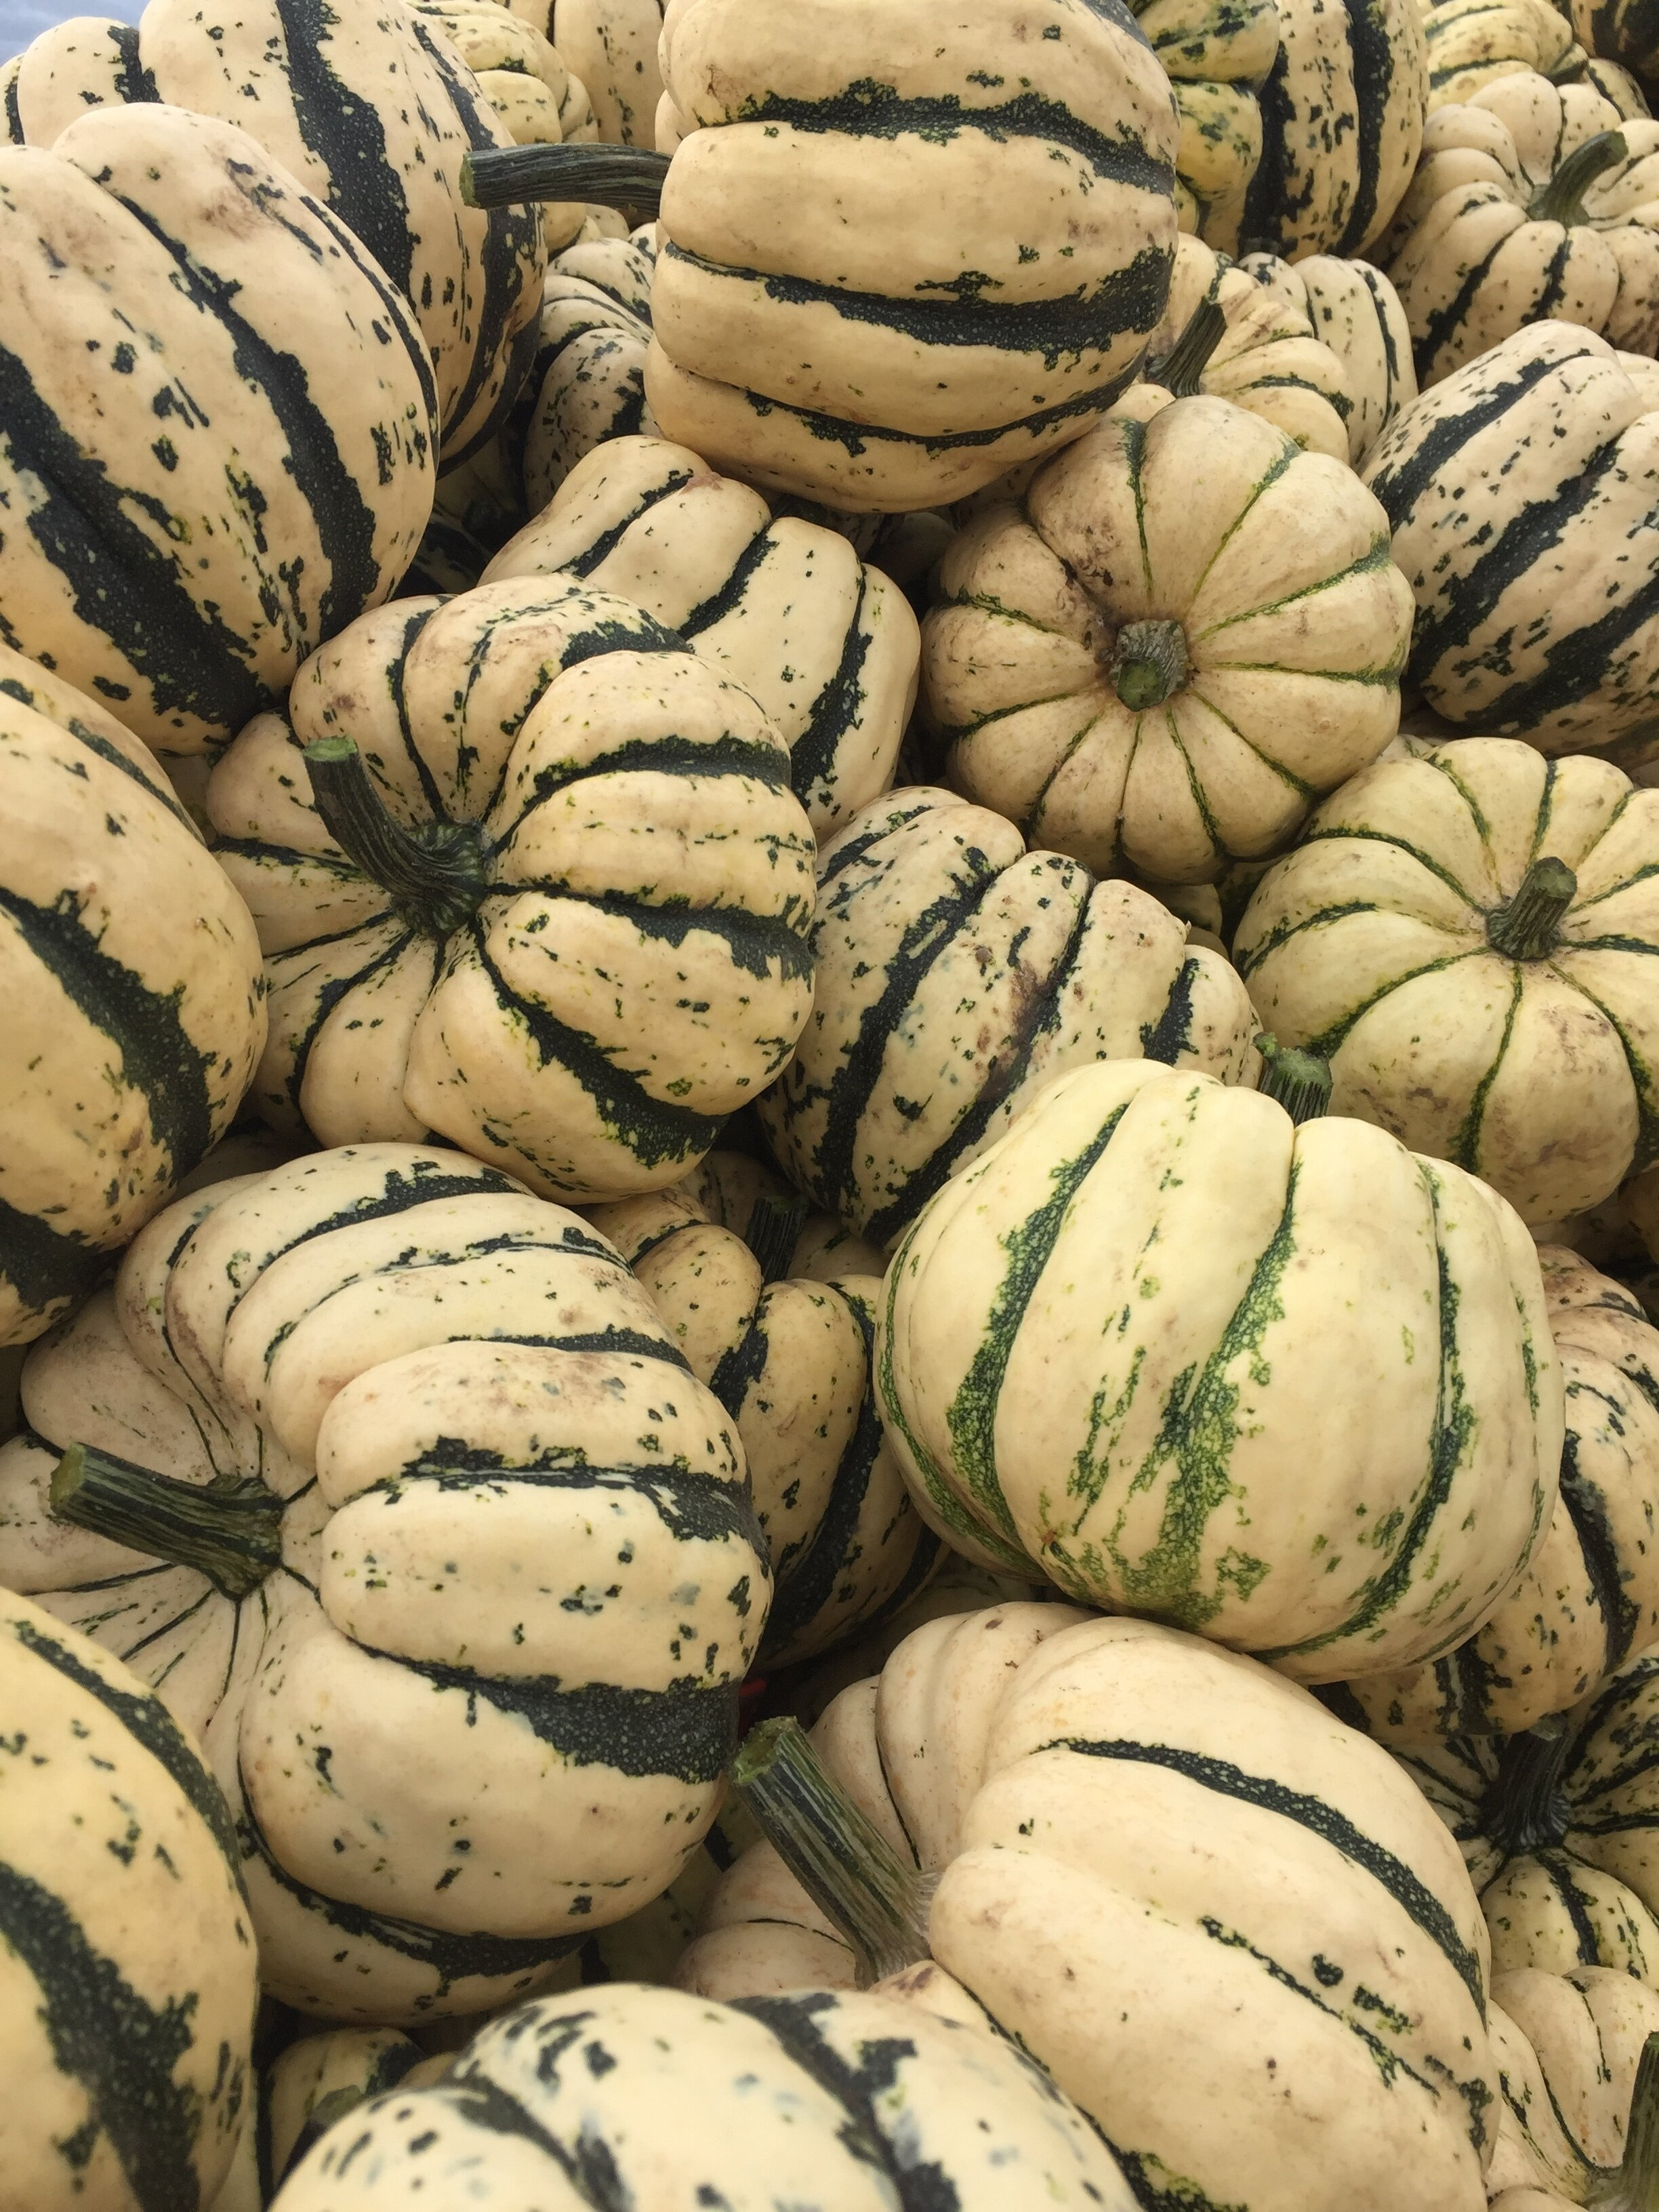 Sweet dumpling acorn winter squash